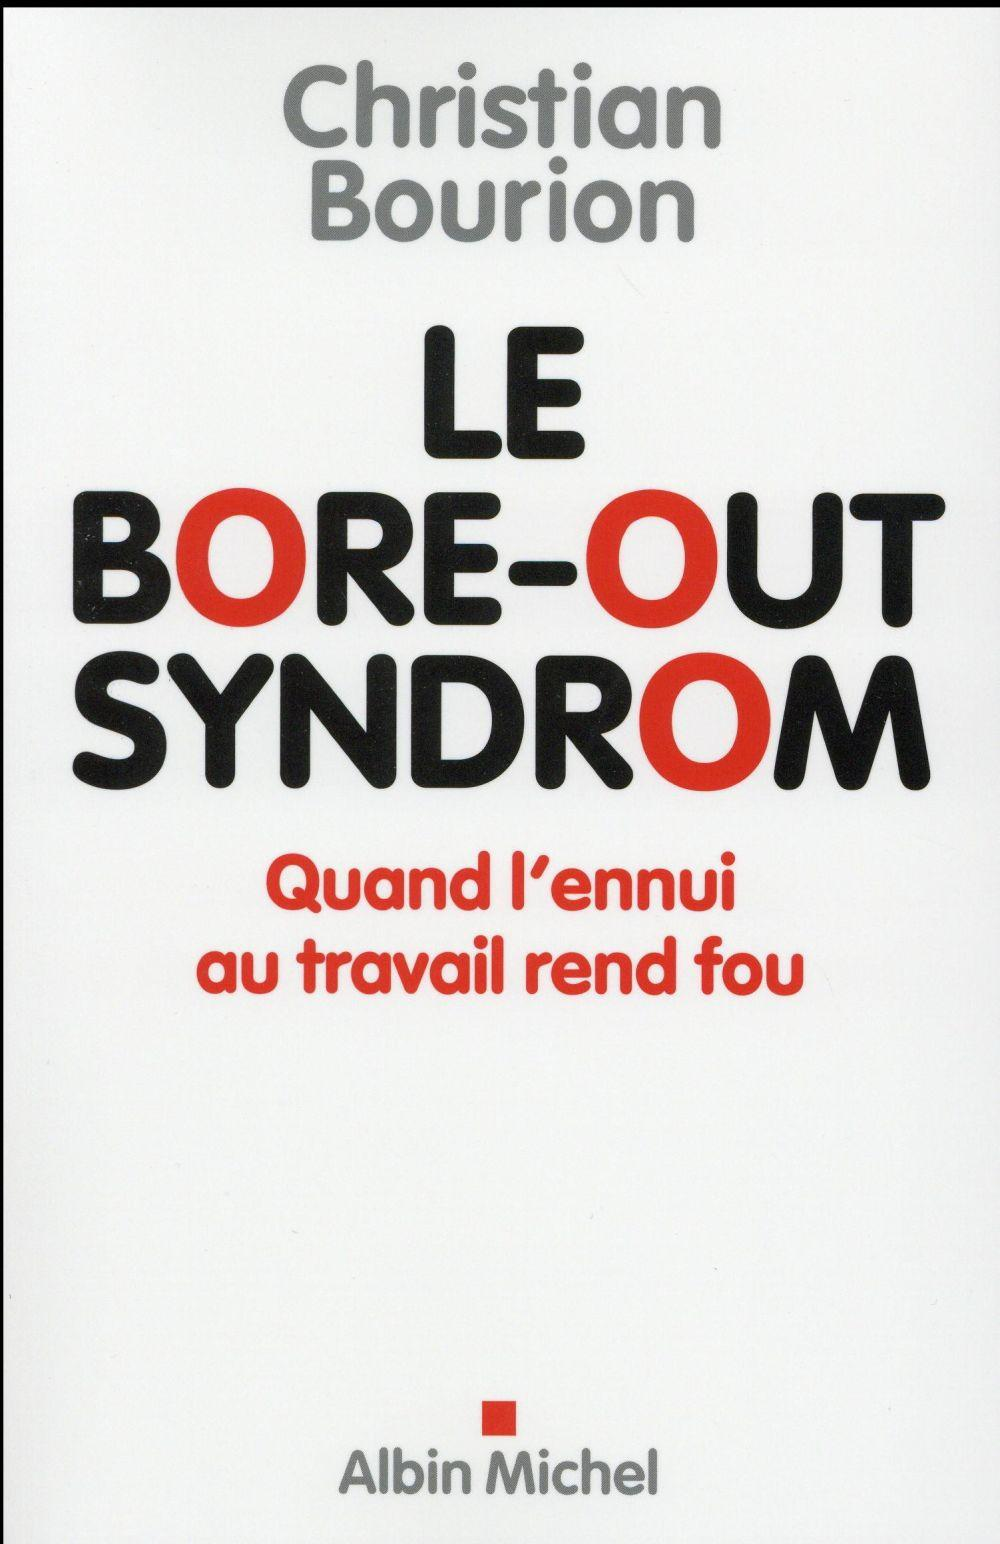 Le bore-out syndrom ; quand l'ennui au travail rend fou  - Christian Bourion